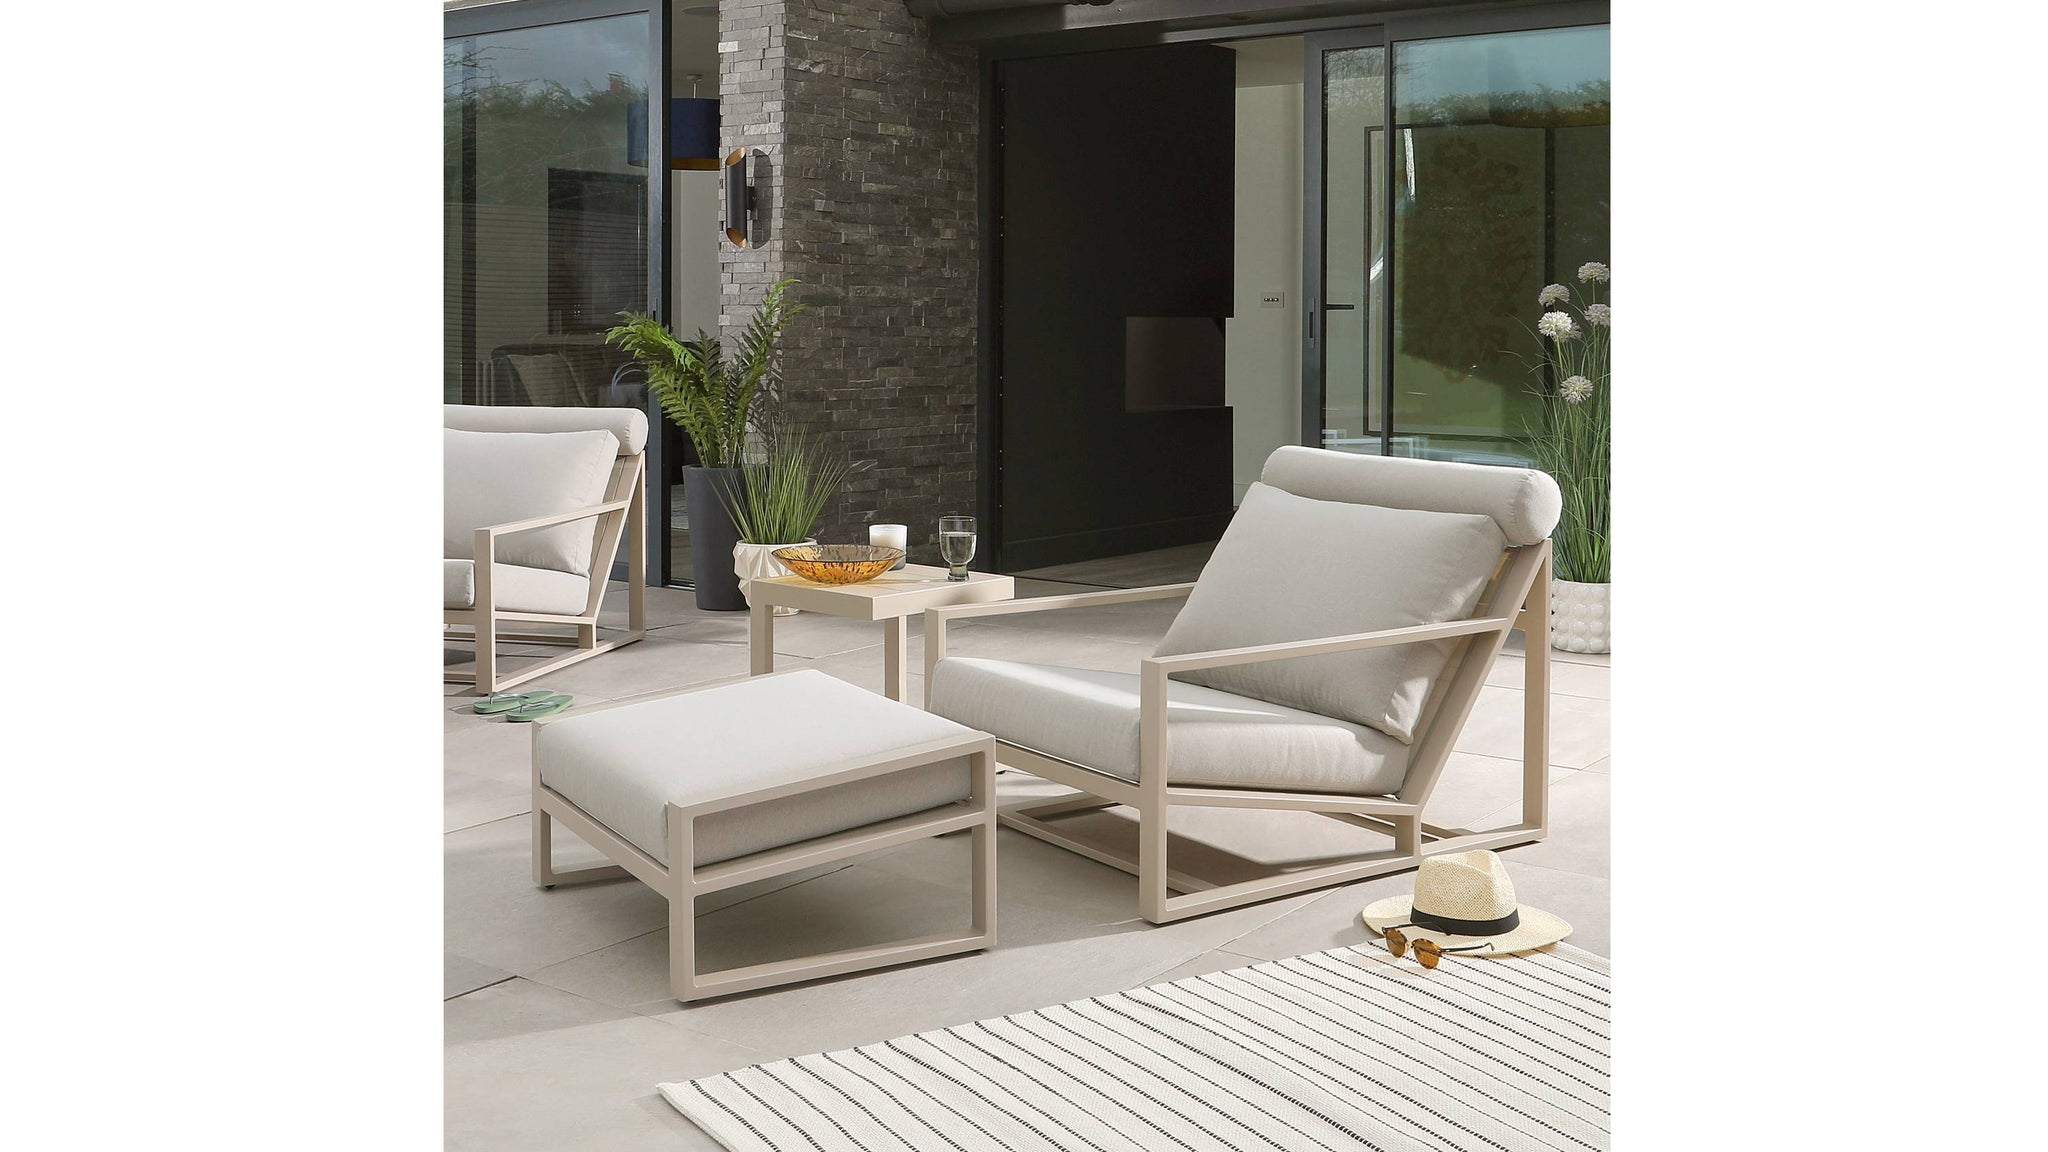 Verano Natural Garden Lounge Chair and Footstool